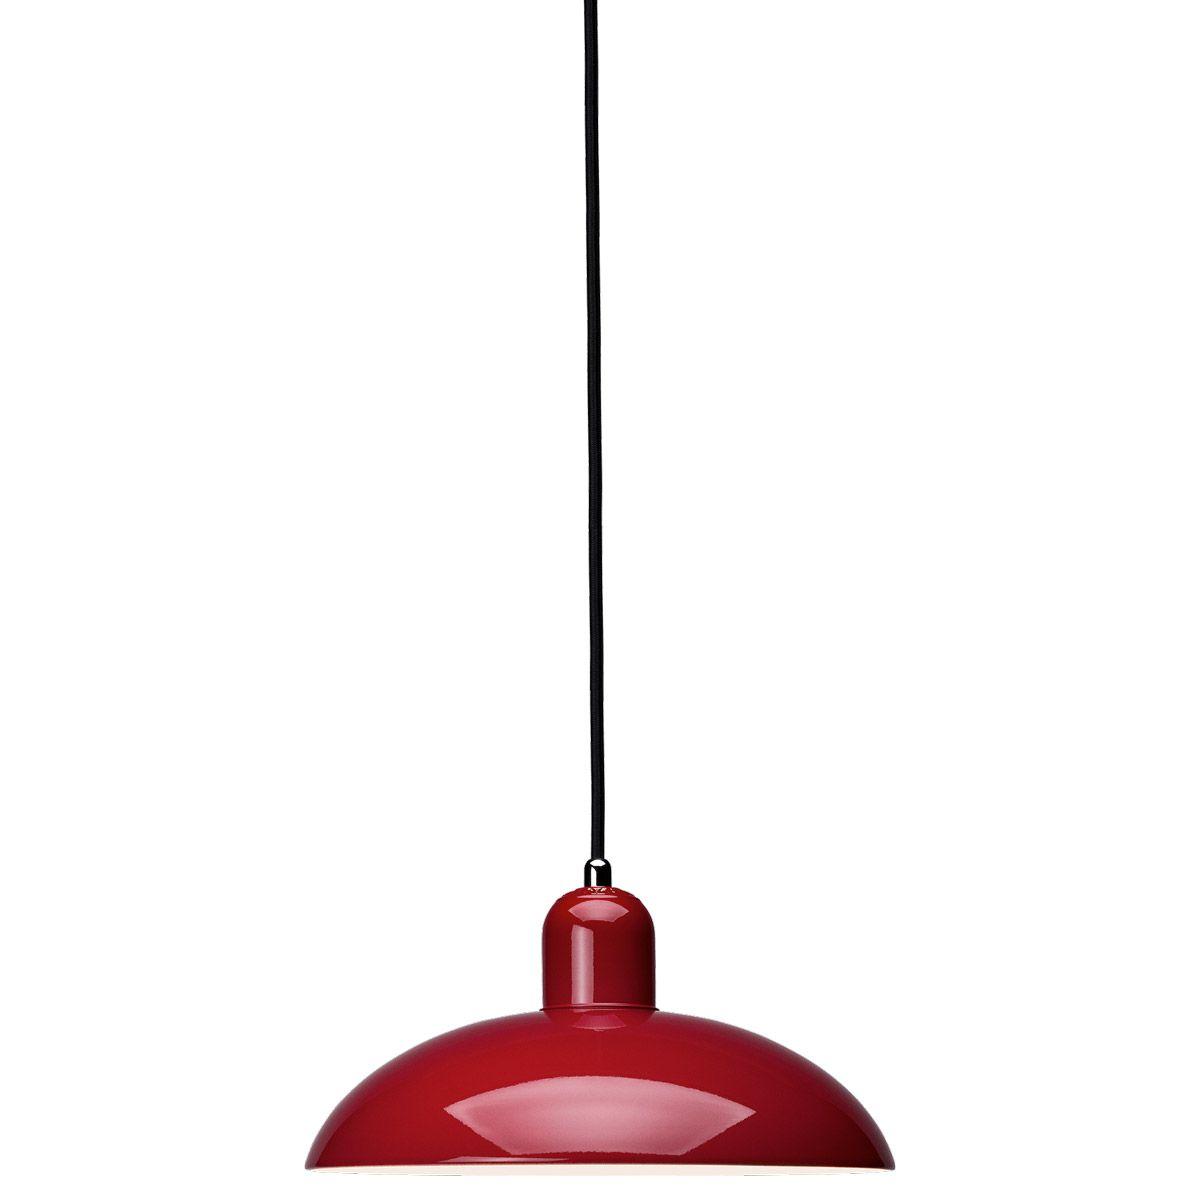 Lamp Kaiser Idell 6631P Red by Christian Dell edited by Light Years